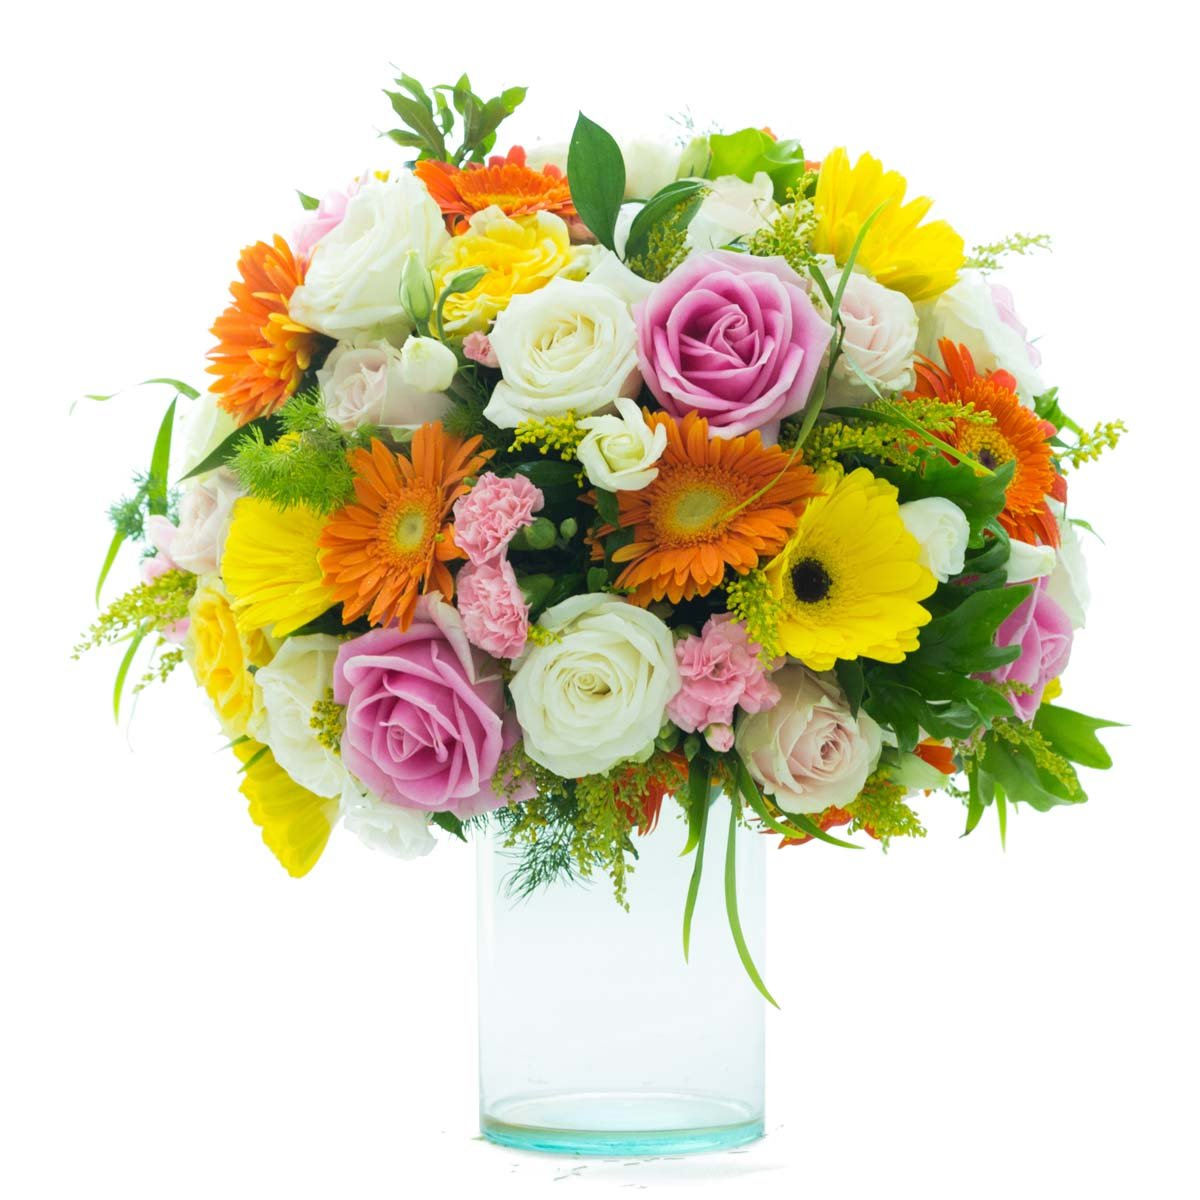 Flower Gifts | Caribbean Sunrise Mixed Floral Bouquet - Enduring Roses